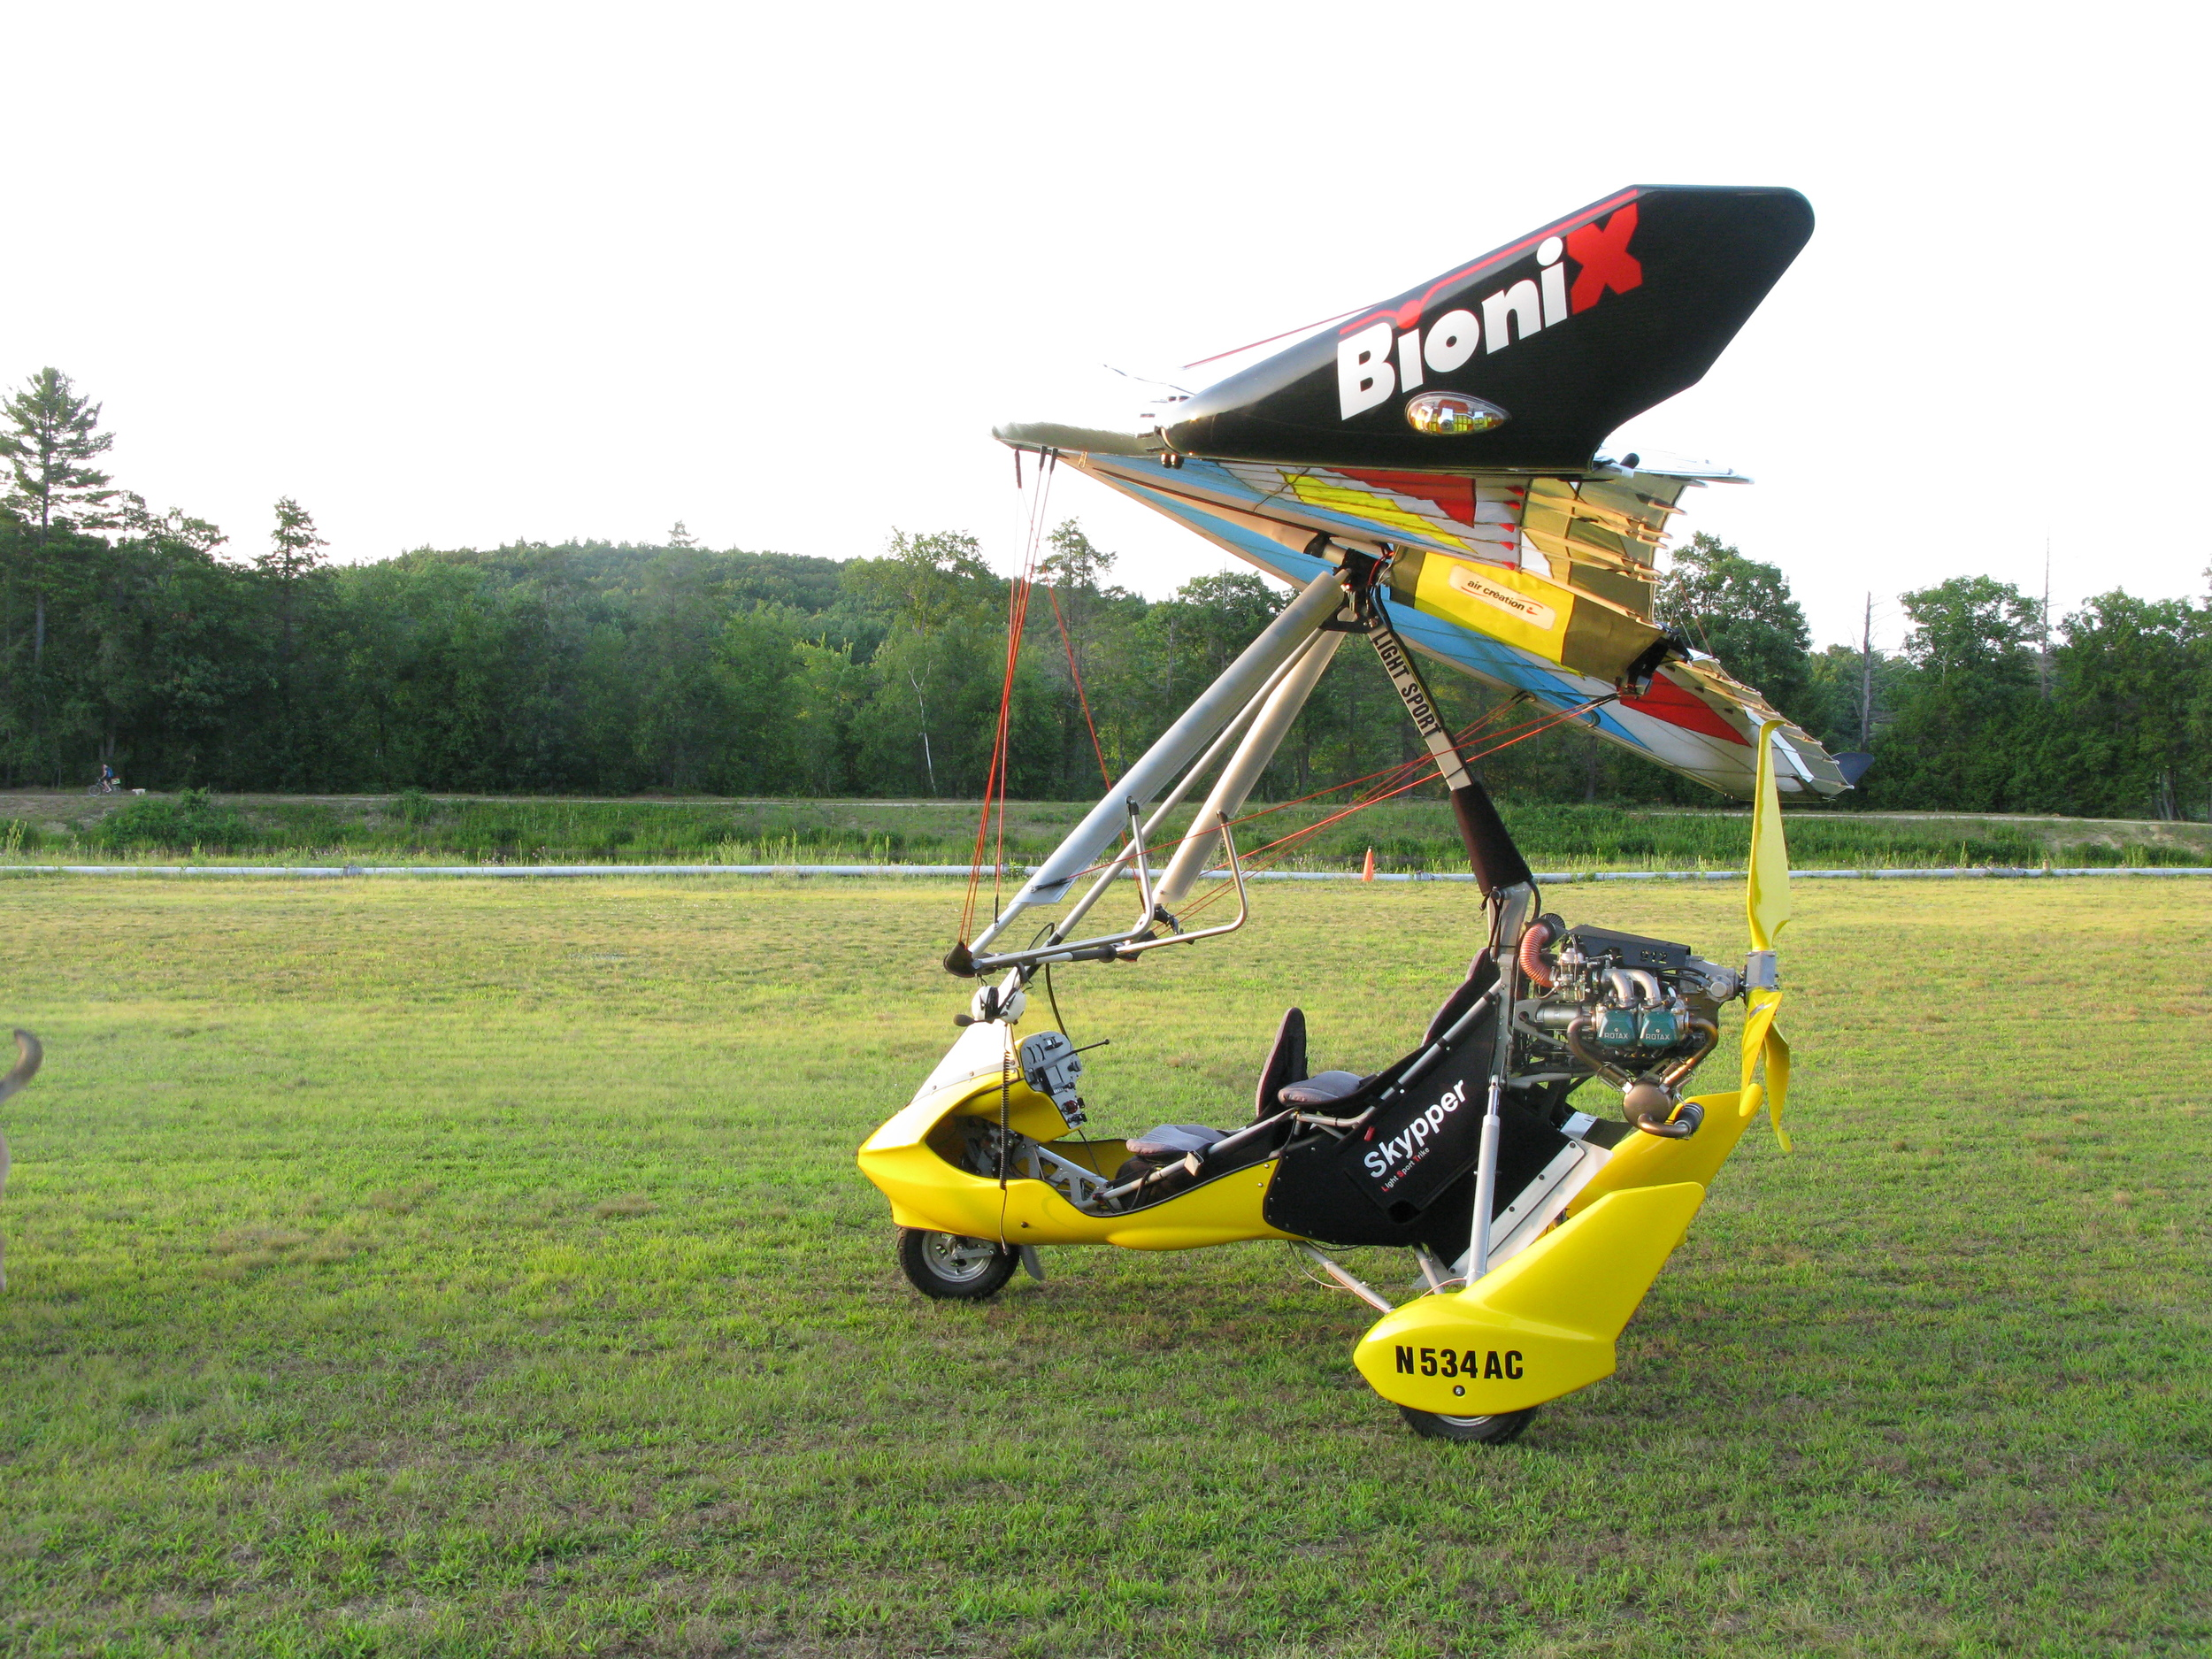 Fly our new 2014 Air Creation Skypper